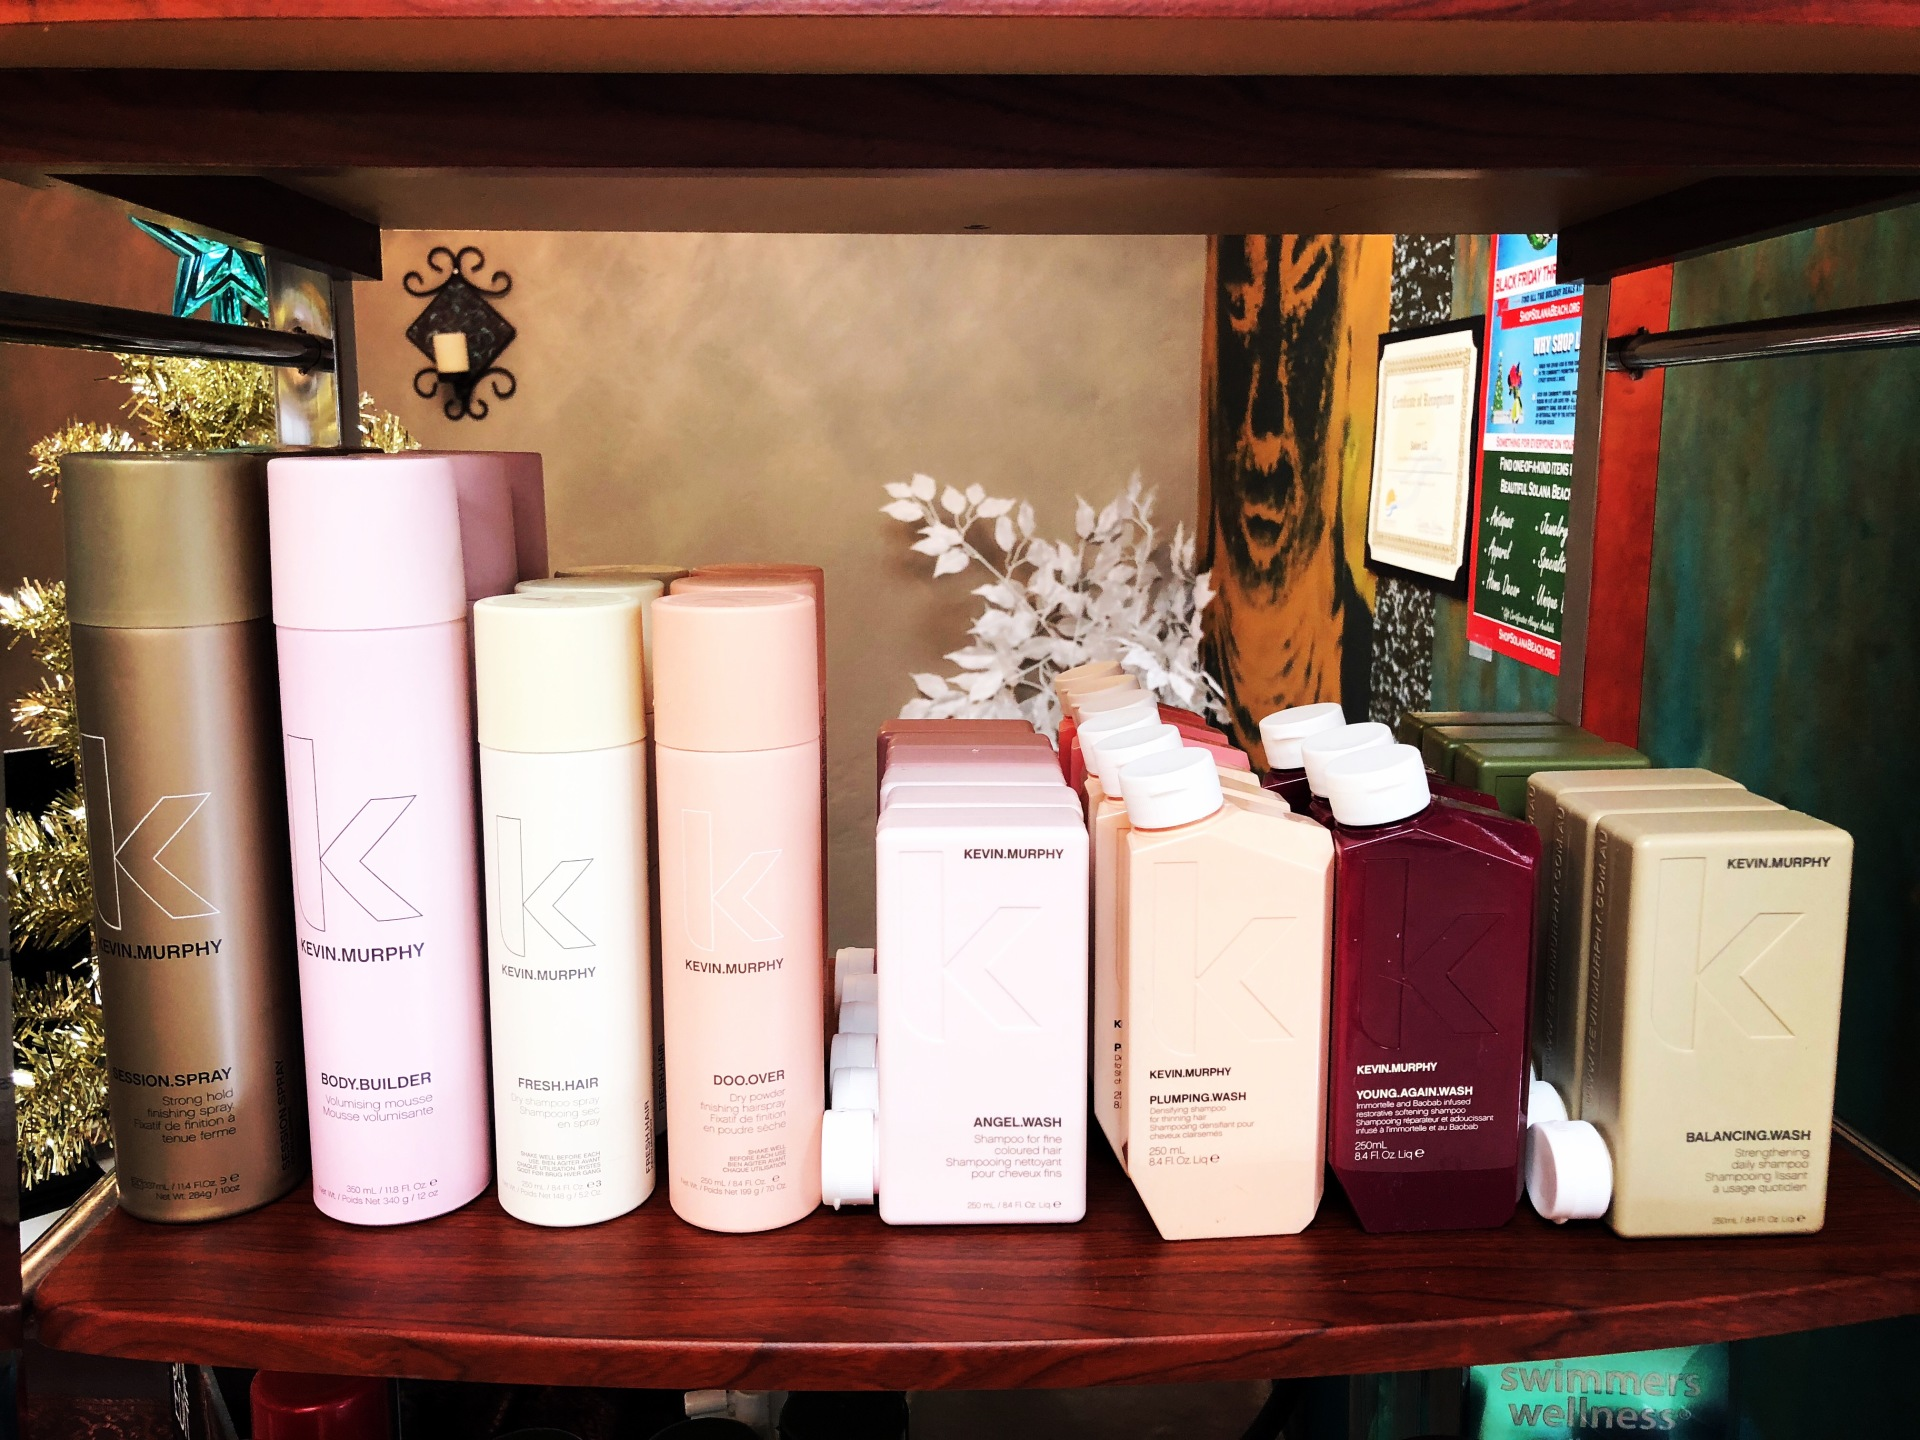 Australian brand Kevin Murphy is now available at Salon LG!